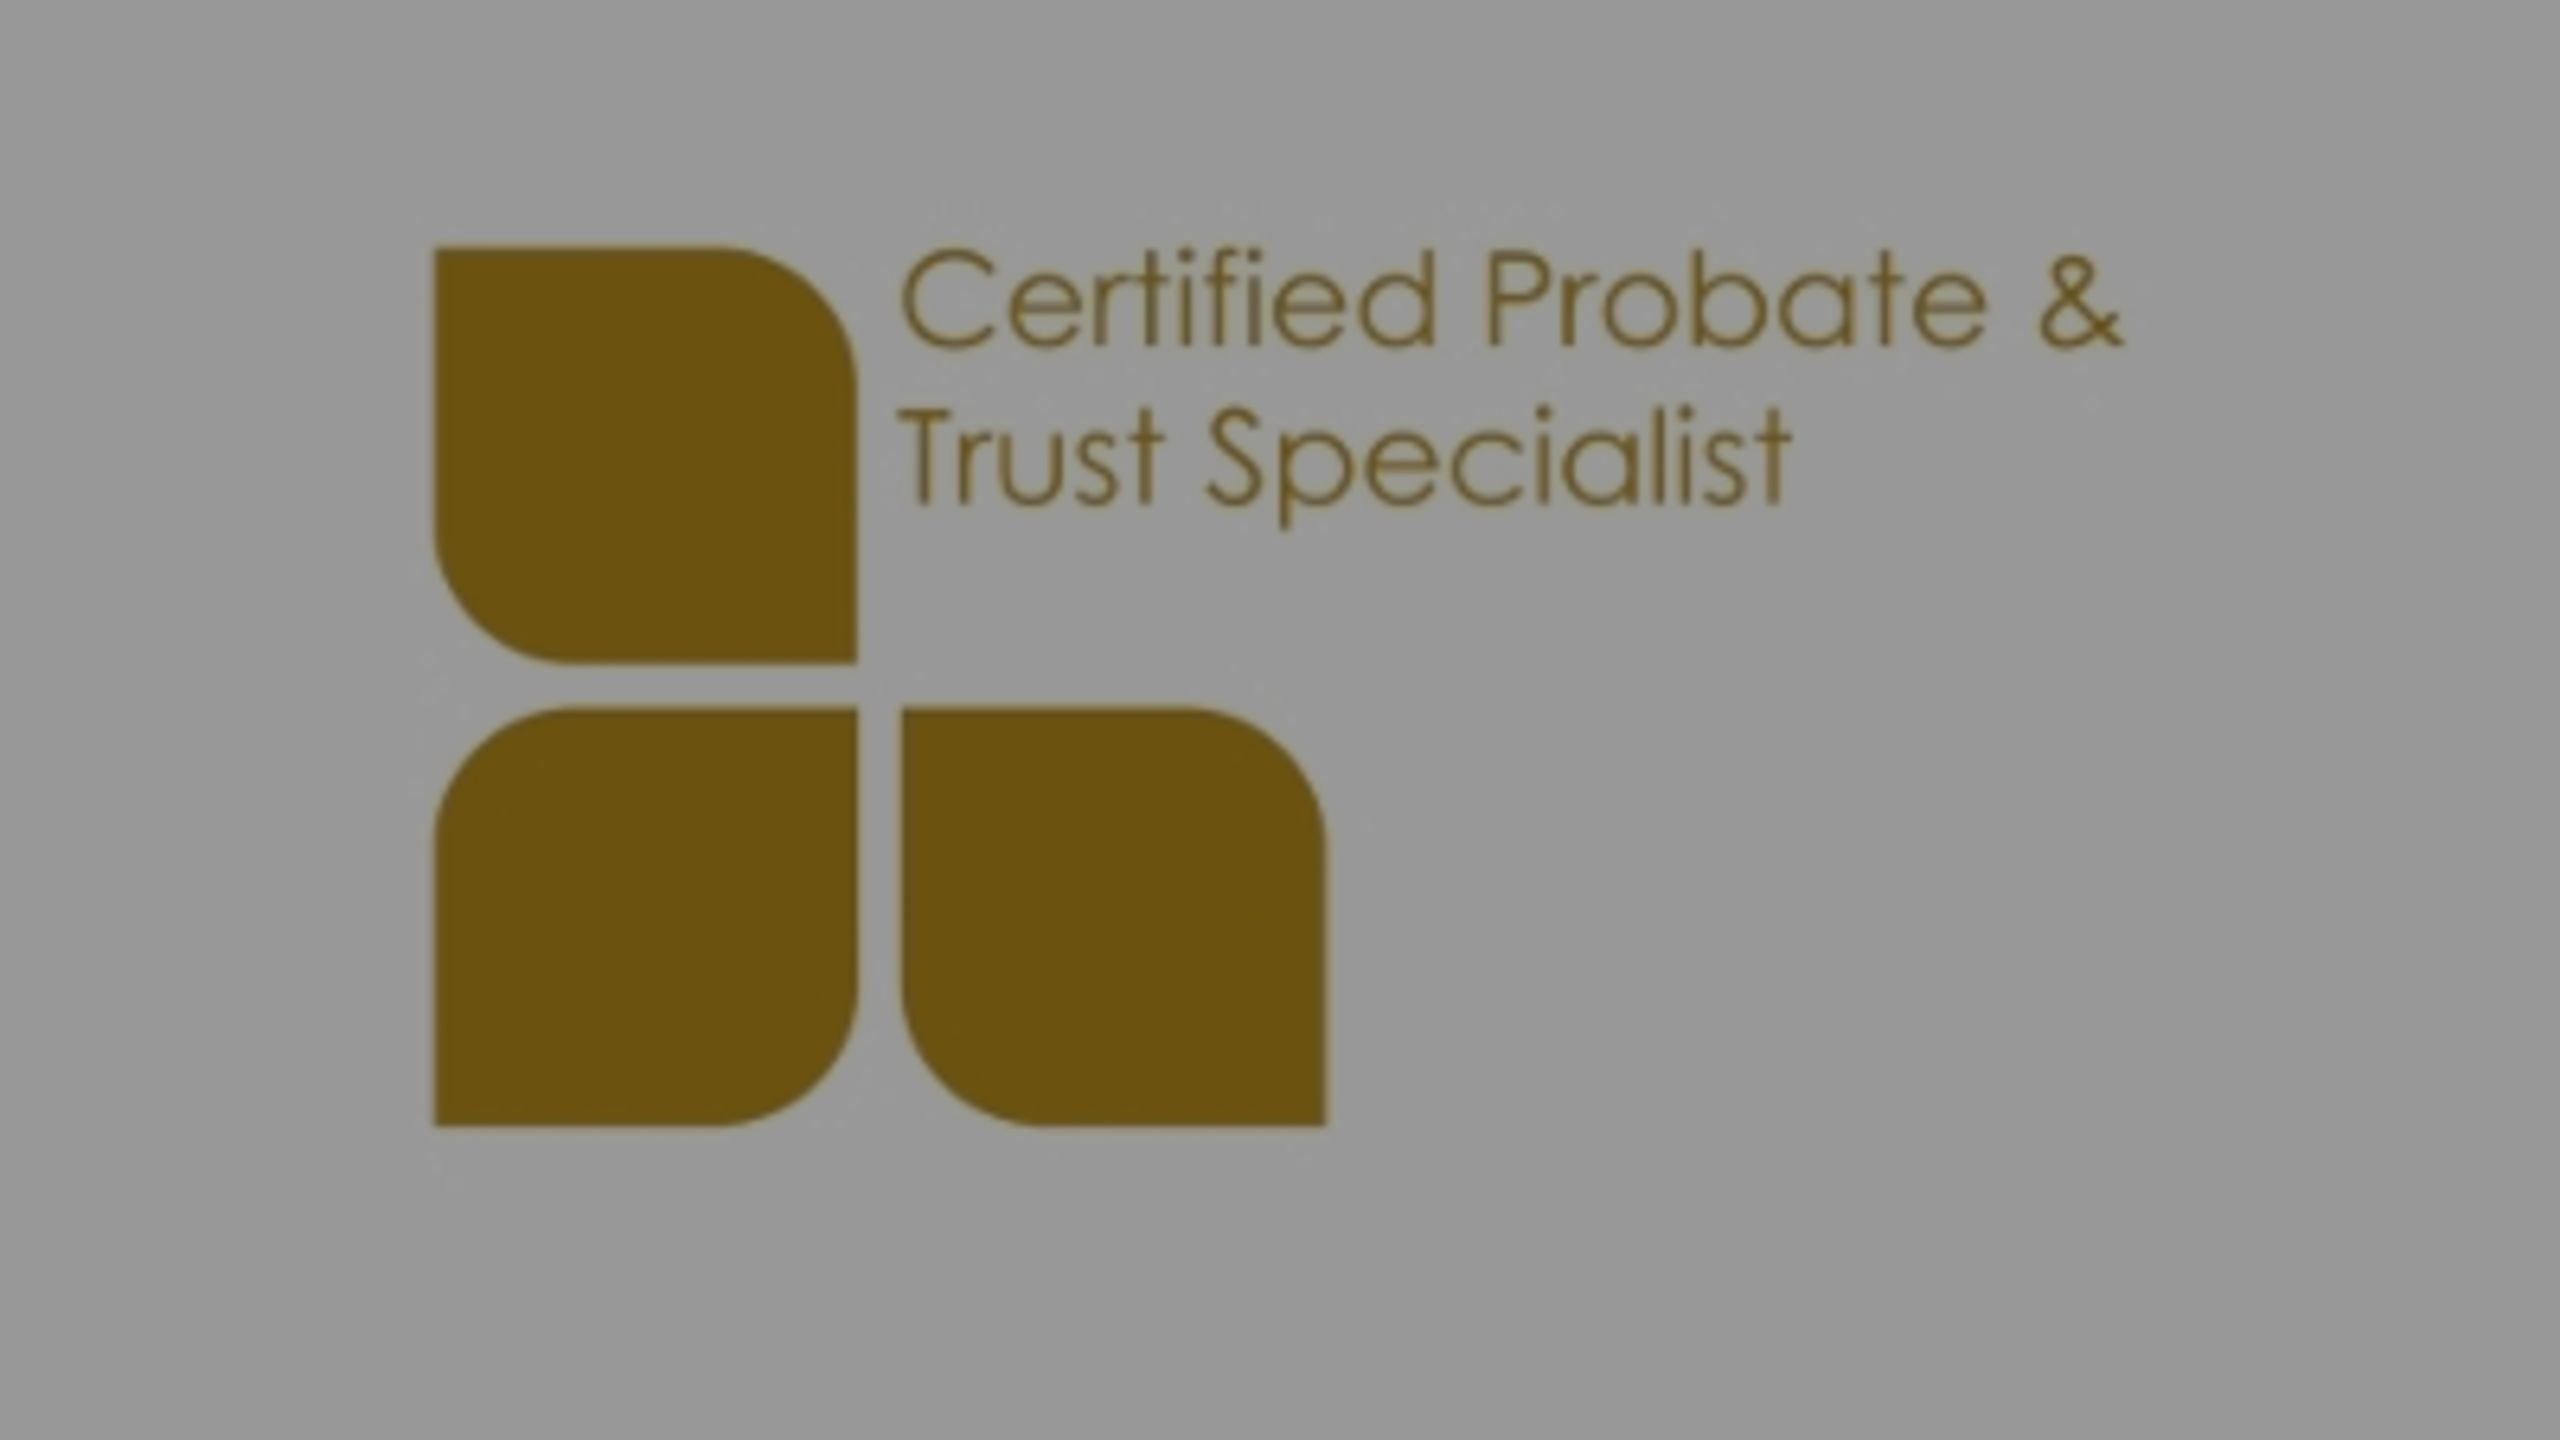 We are Certified Probate and Trust Specialists